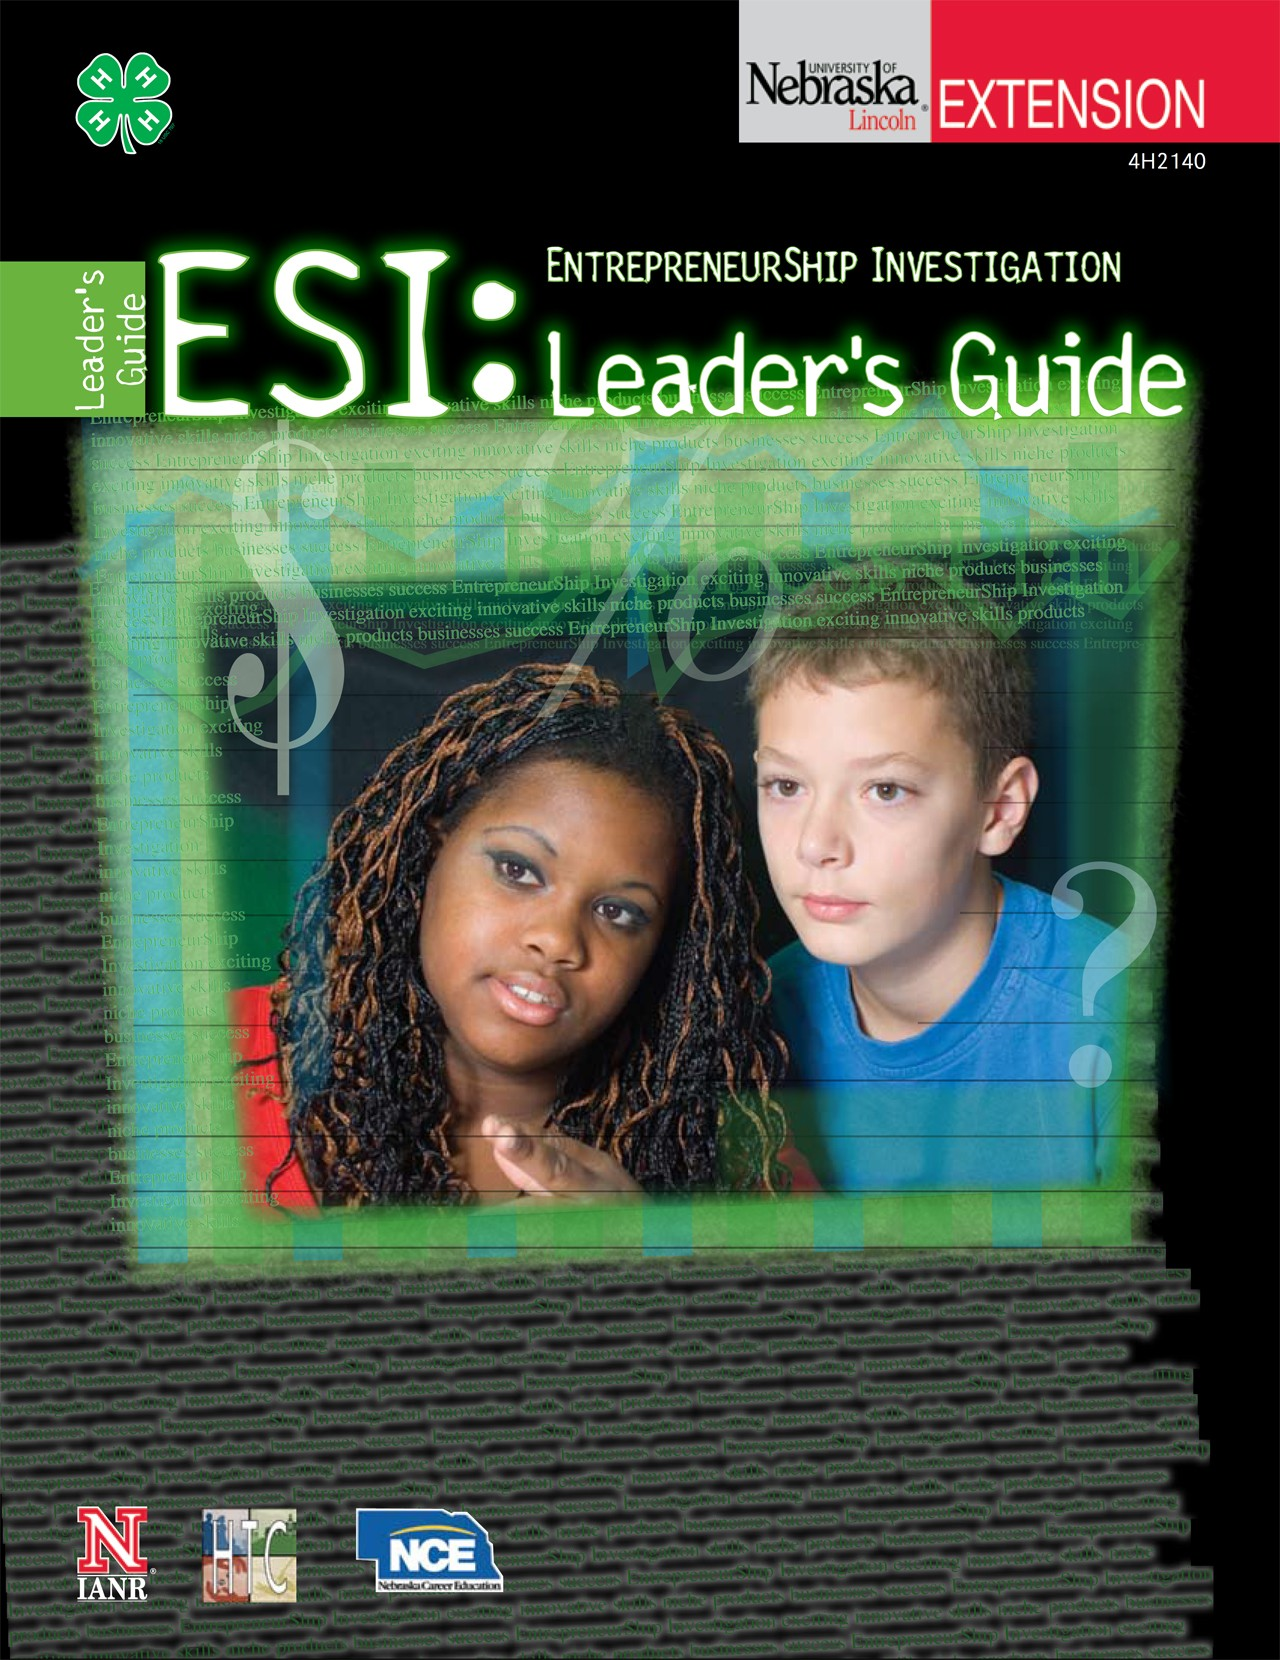 EntrepreneurShip Investigation: Leader's Guide